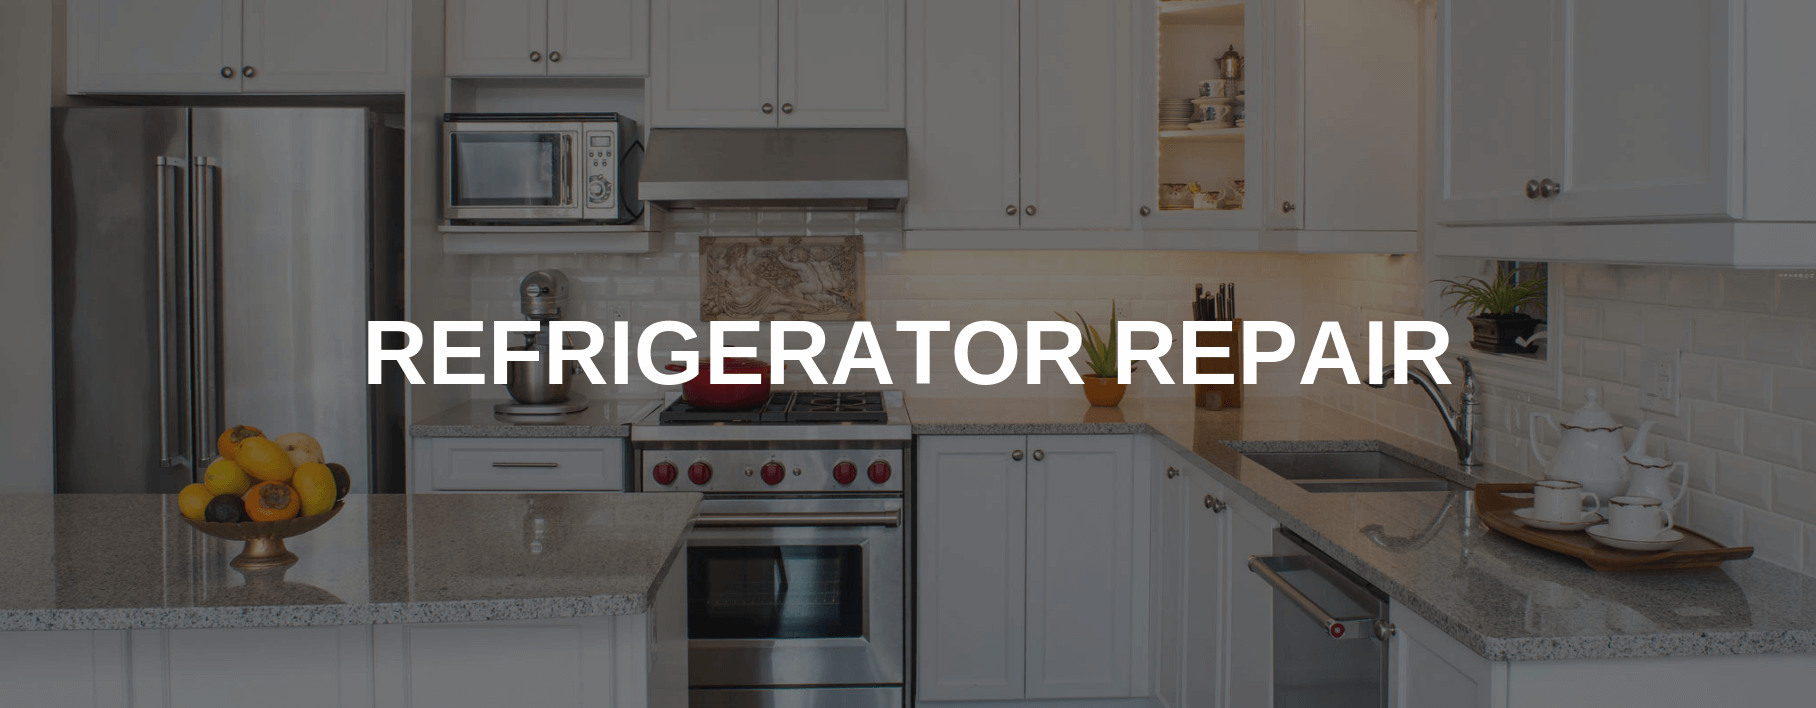 refrigerator repair new britain